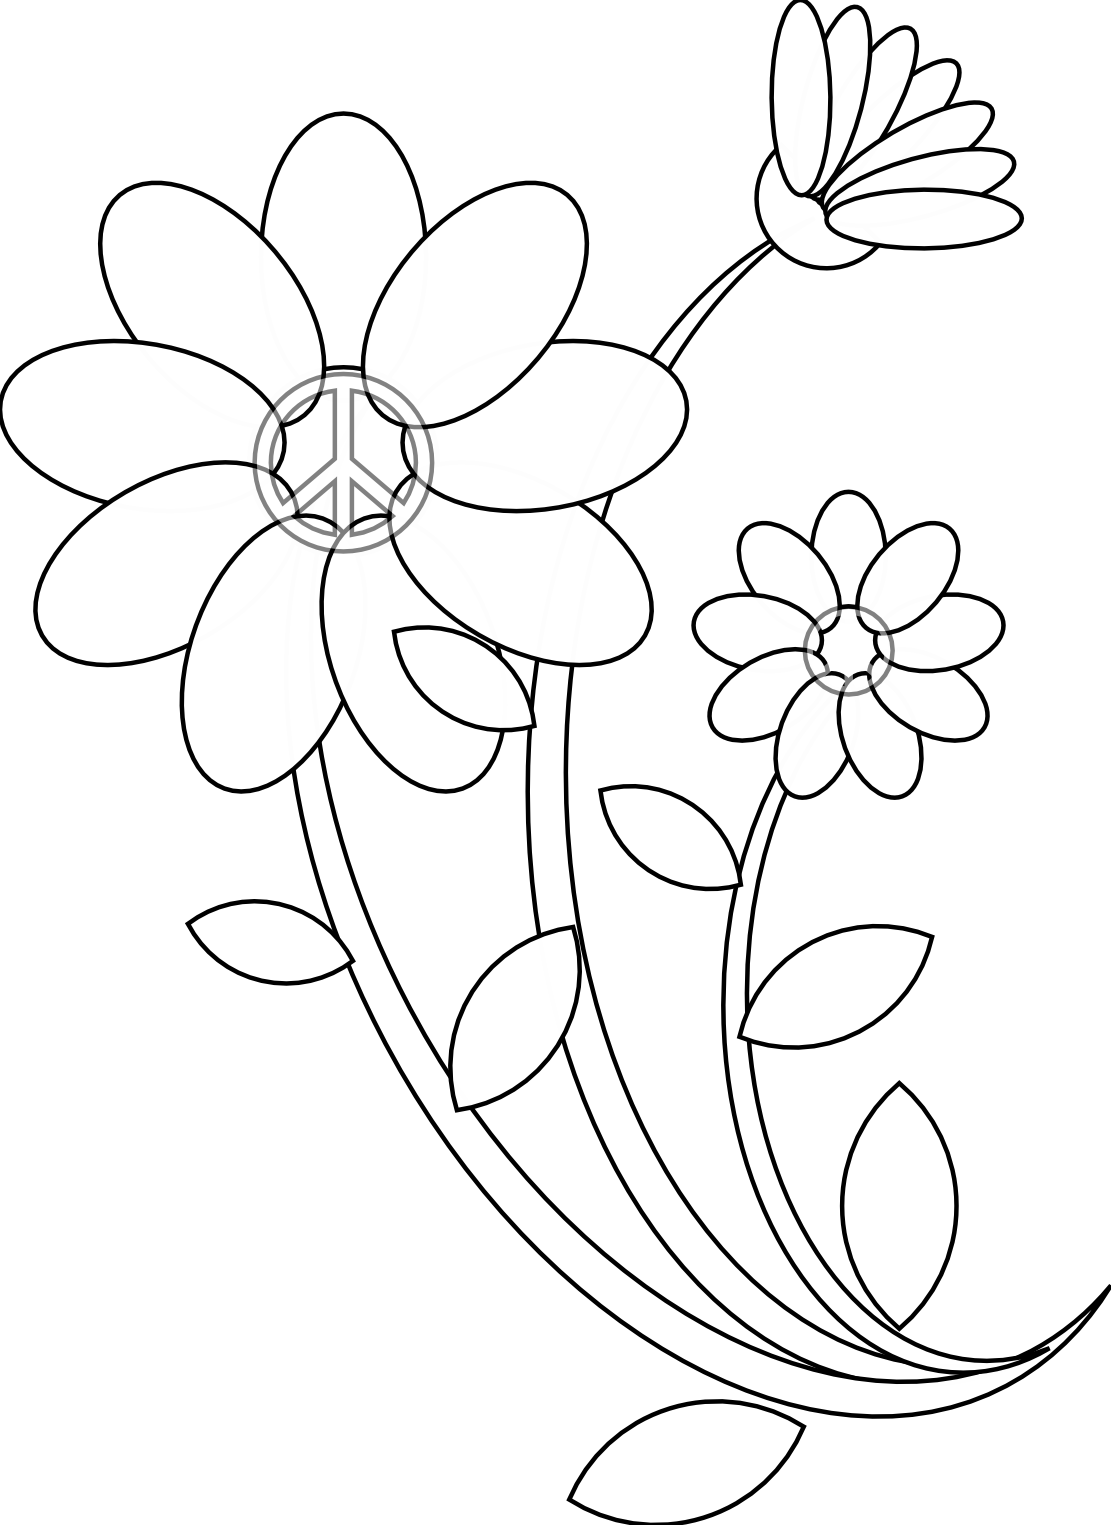 Embroidery drawing black and white. Line art drawings flowers